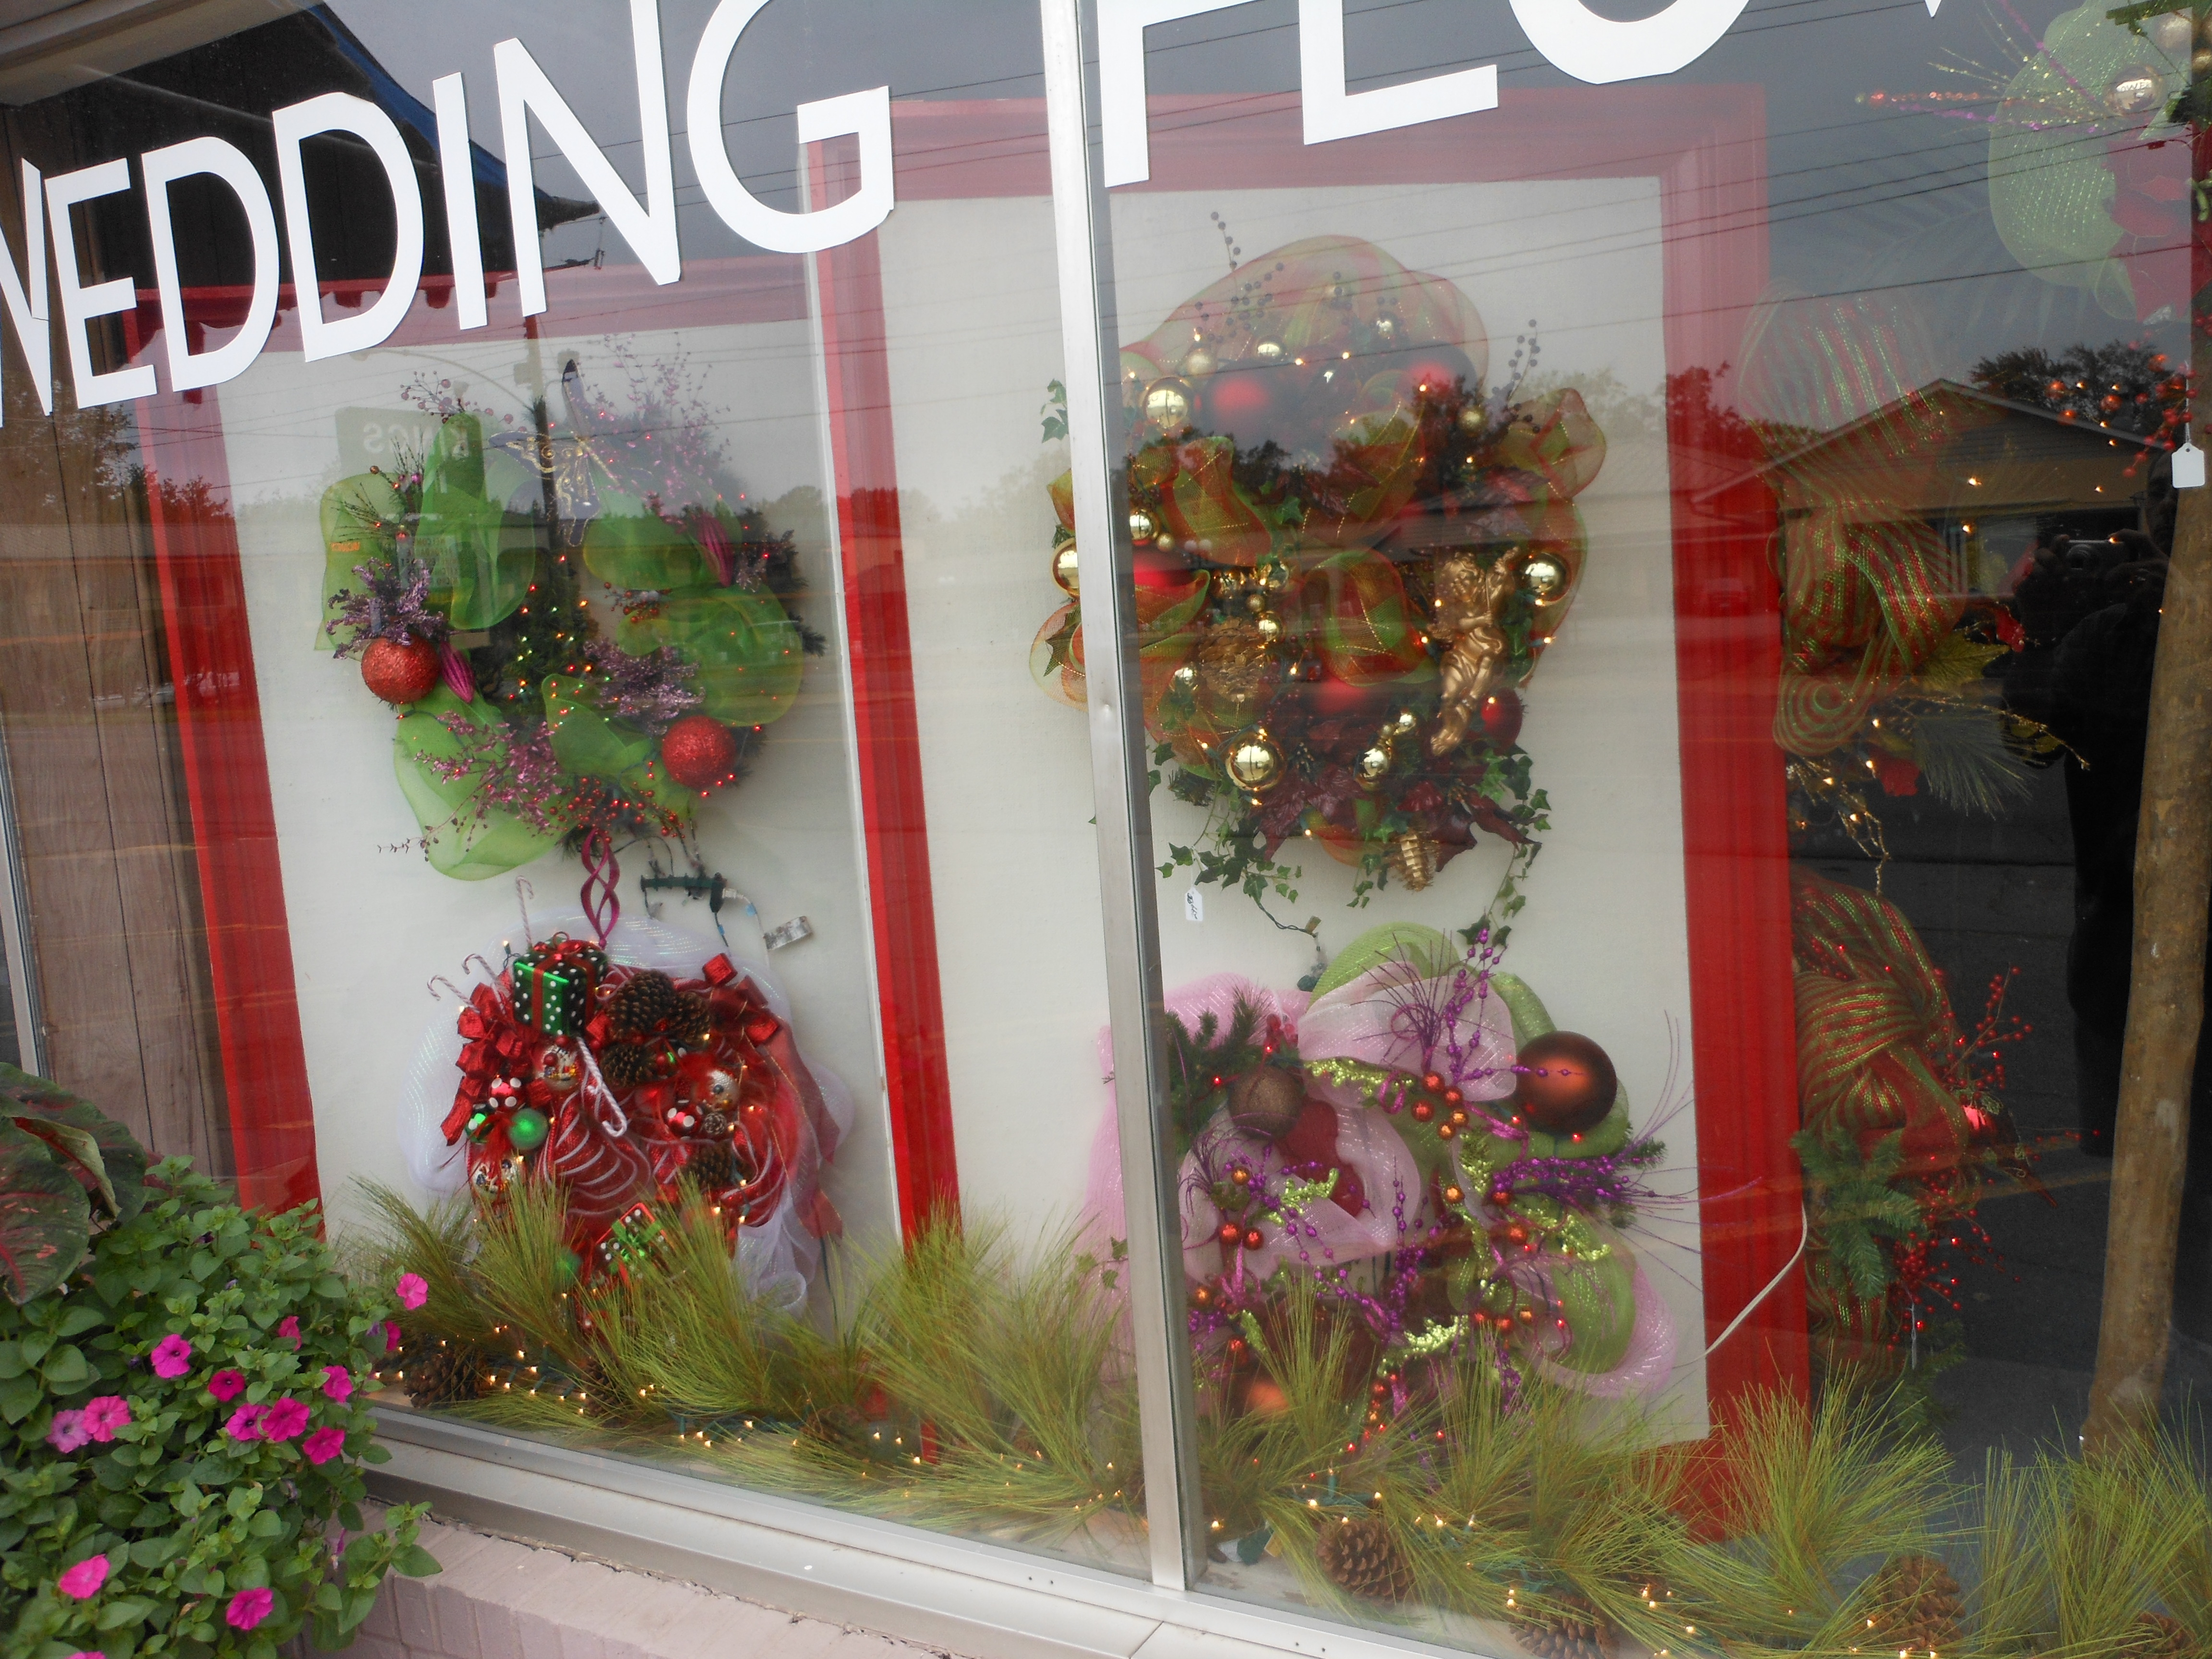 Hot Springs Florist Gifts 2034 Central Ave Hot Springs National